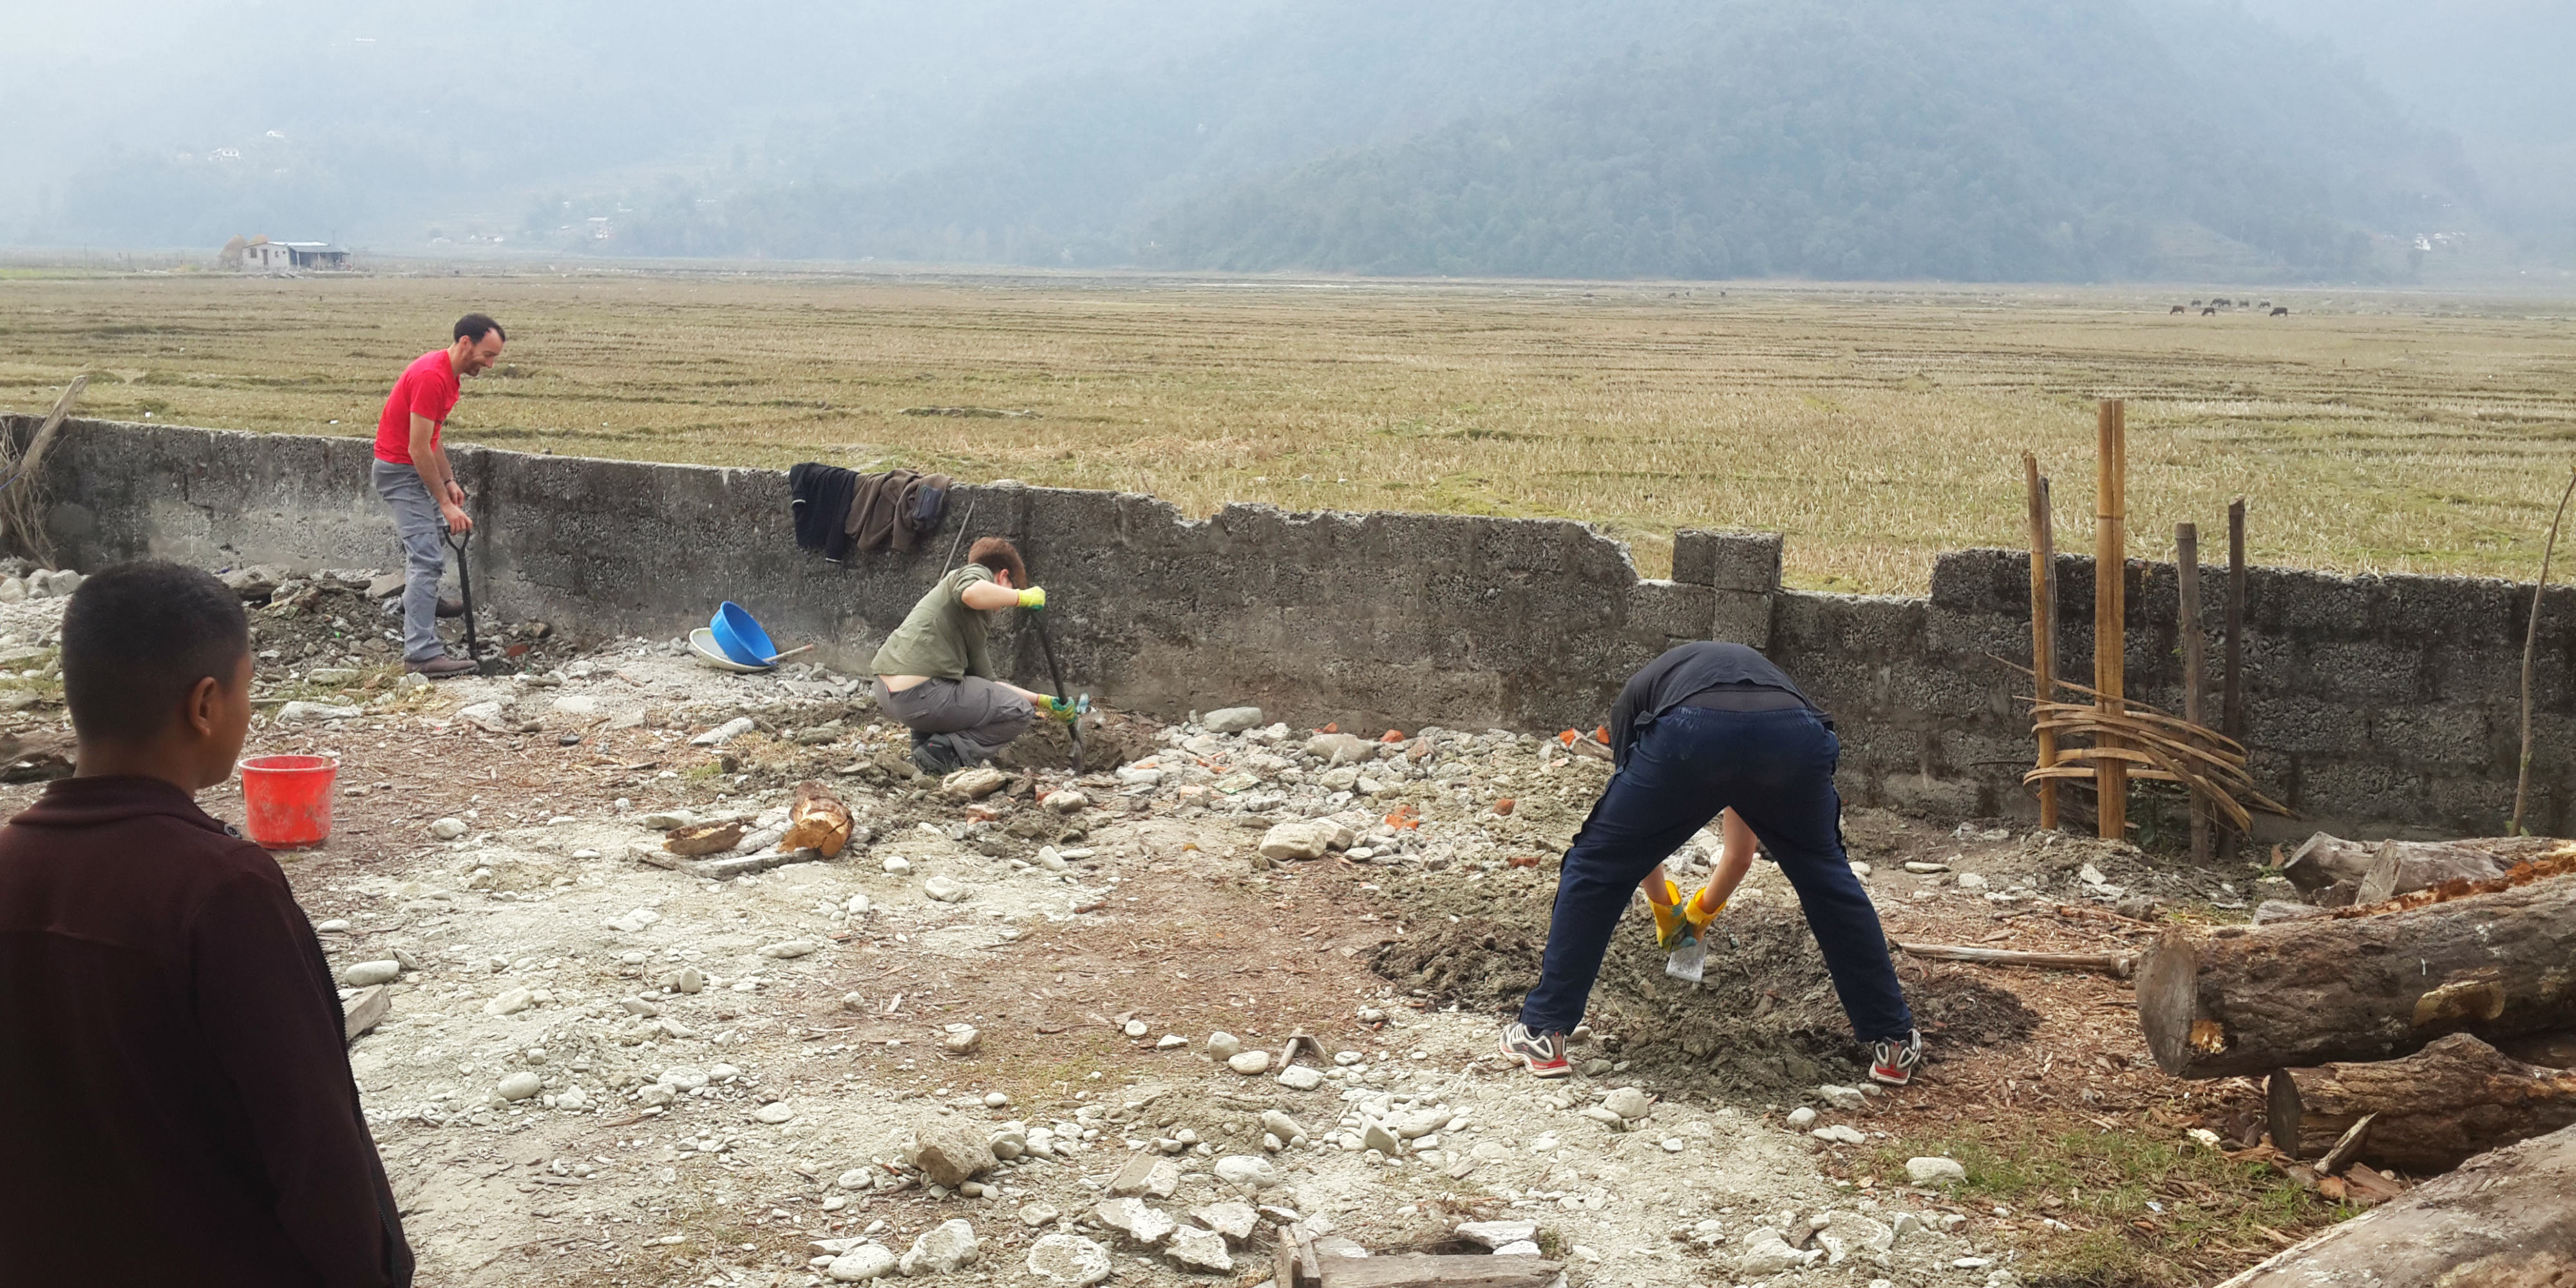 While volunteering in Nepal, participants build a wall around a school, to help ensure the good health and wellbeing of the learners.